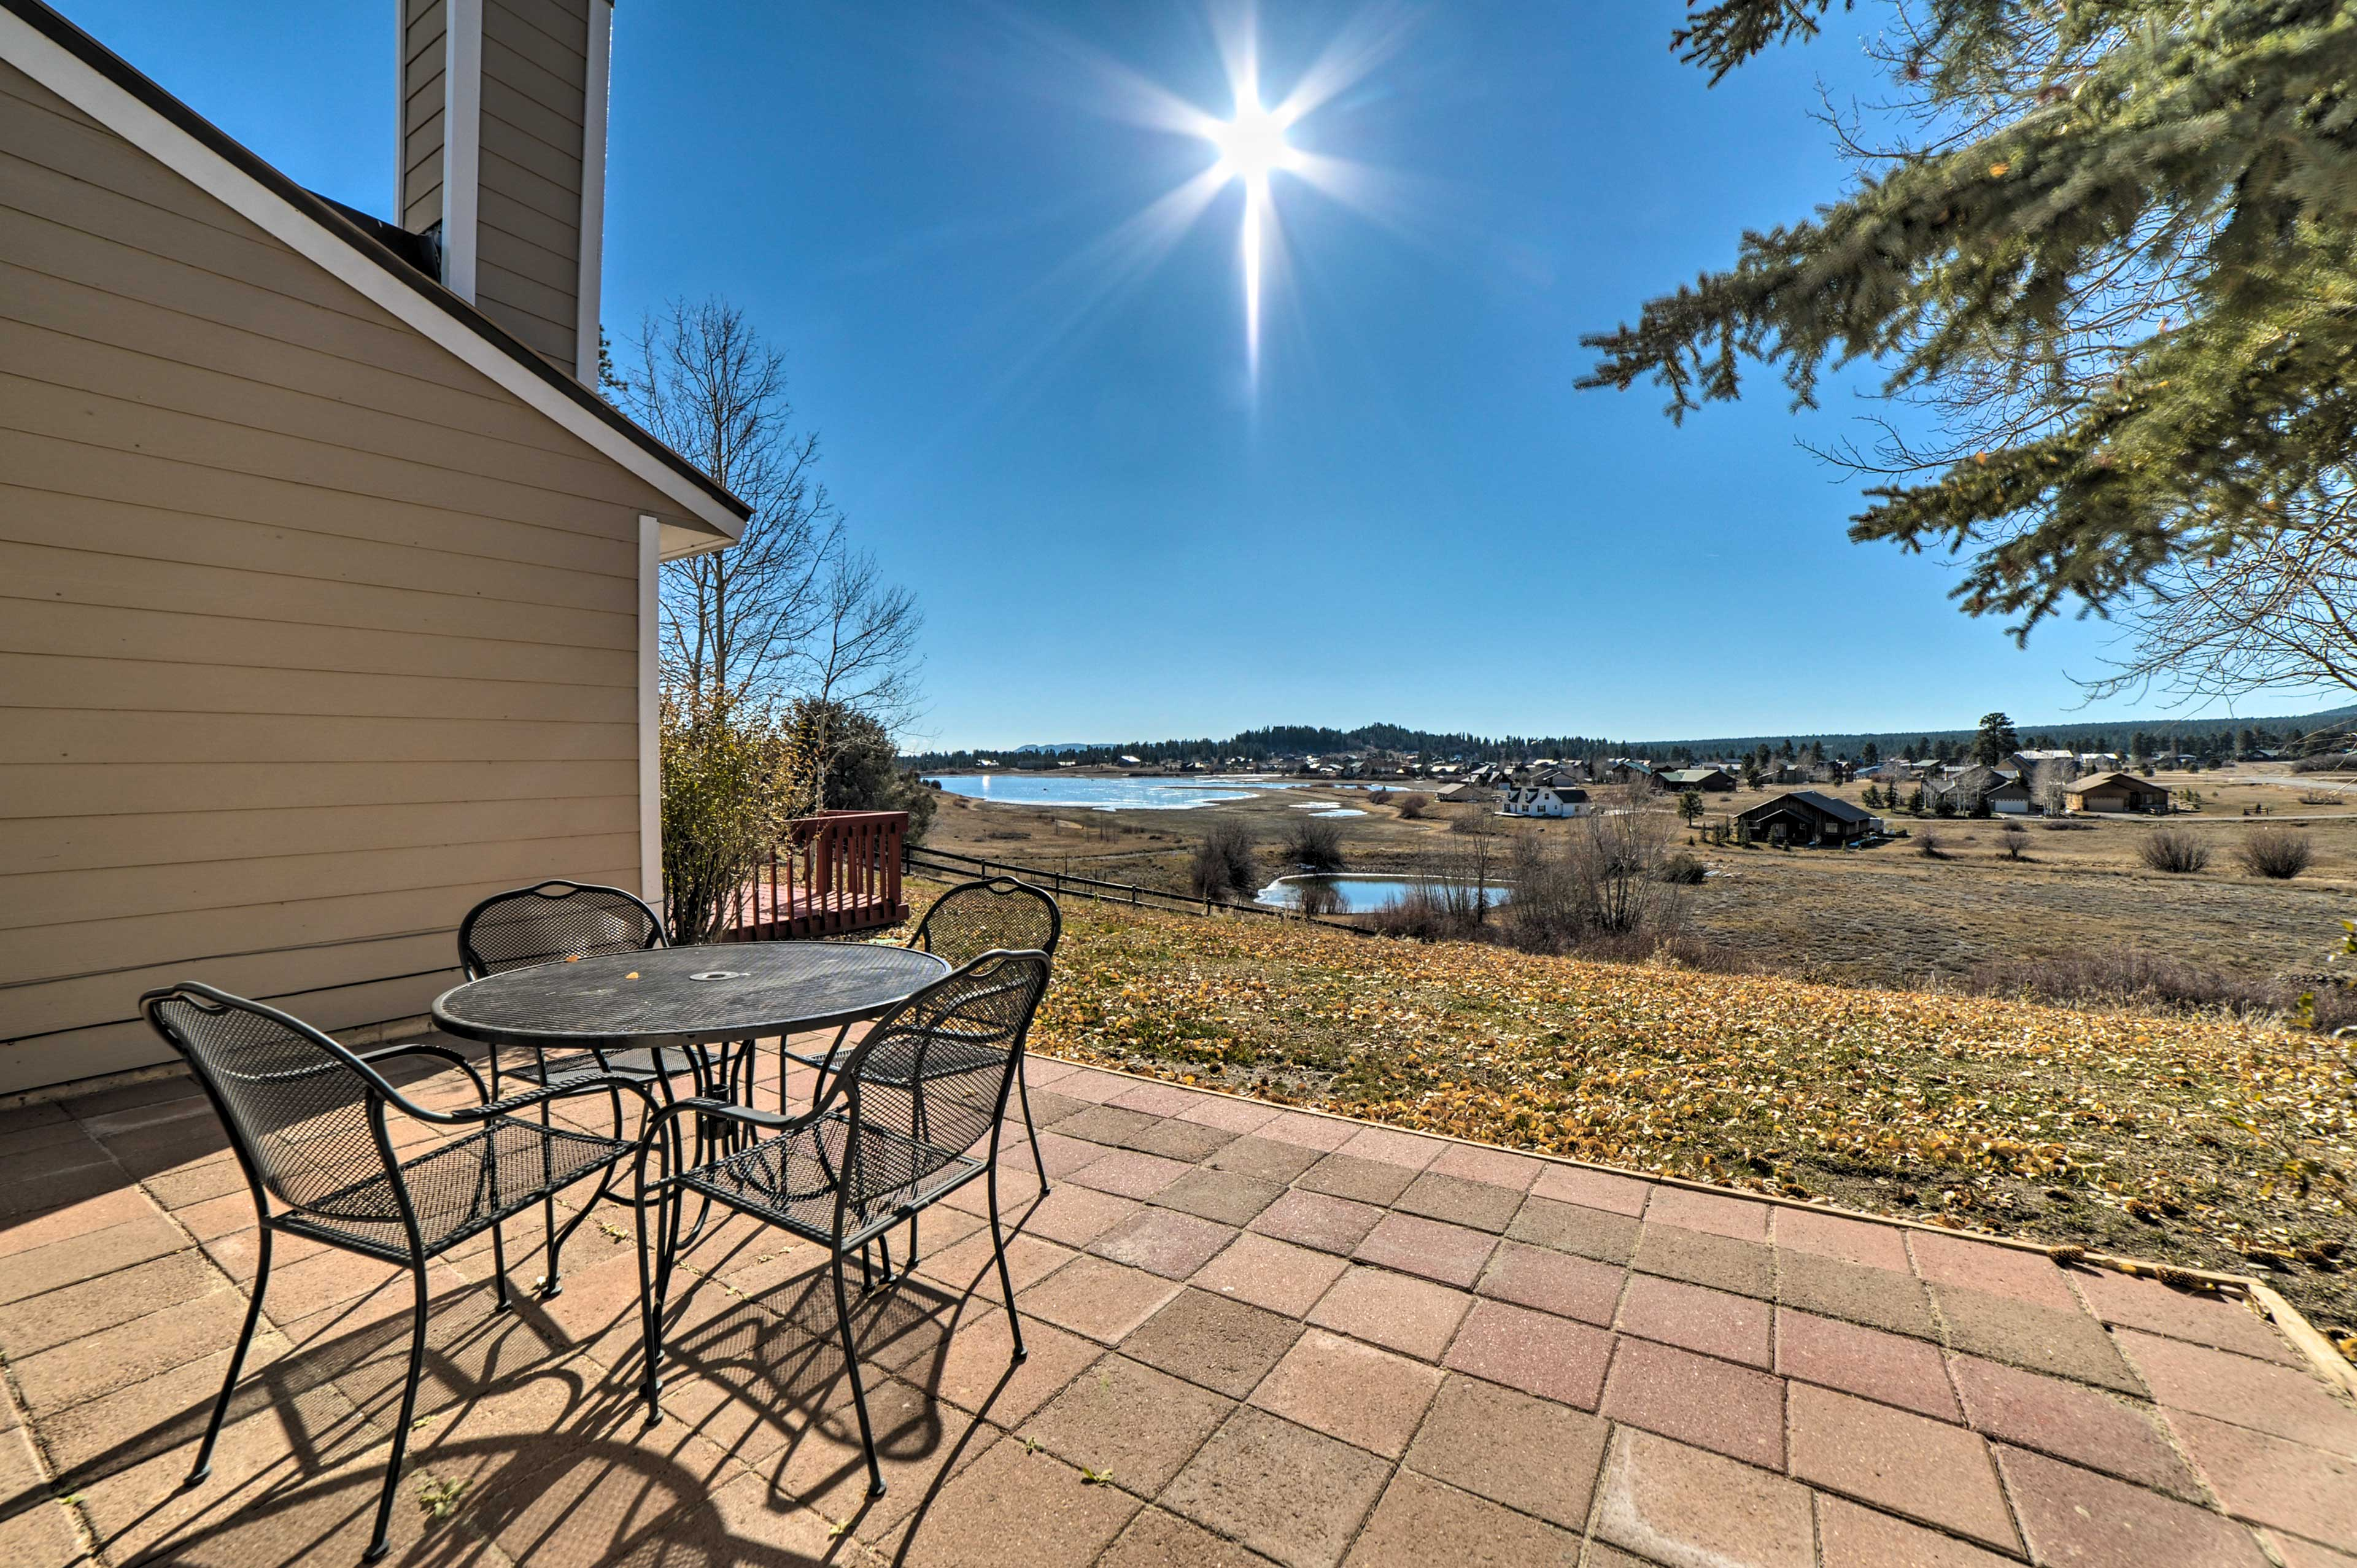 Fall in love with nature at this vacation rental condo in Pagosa Springs!